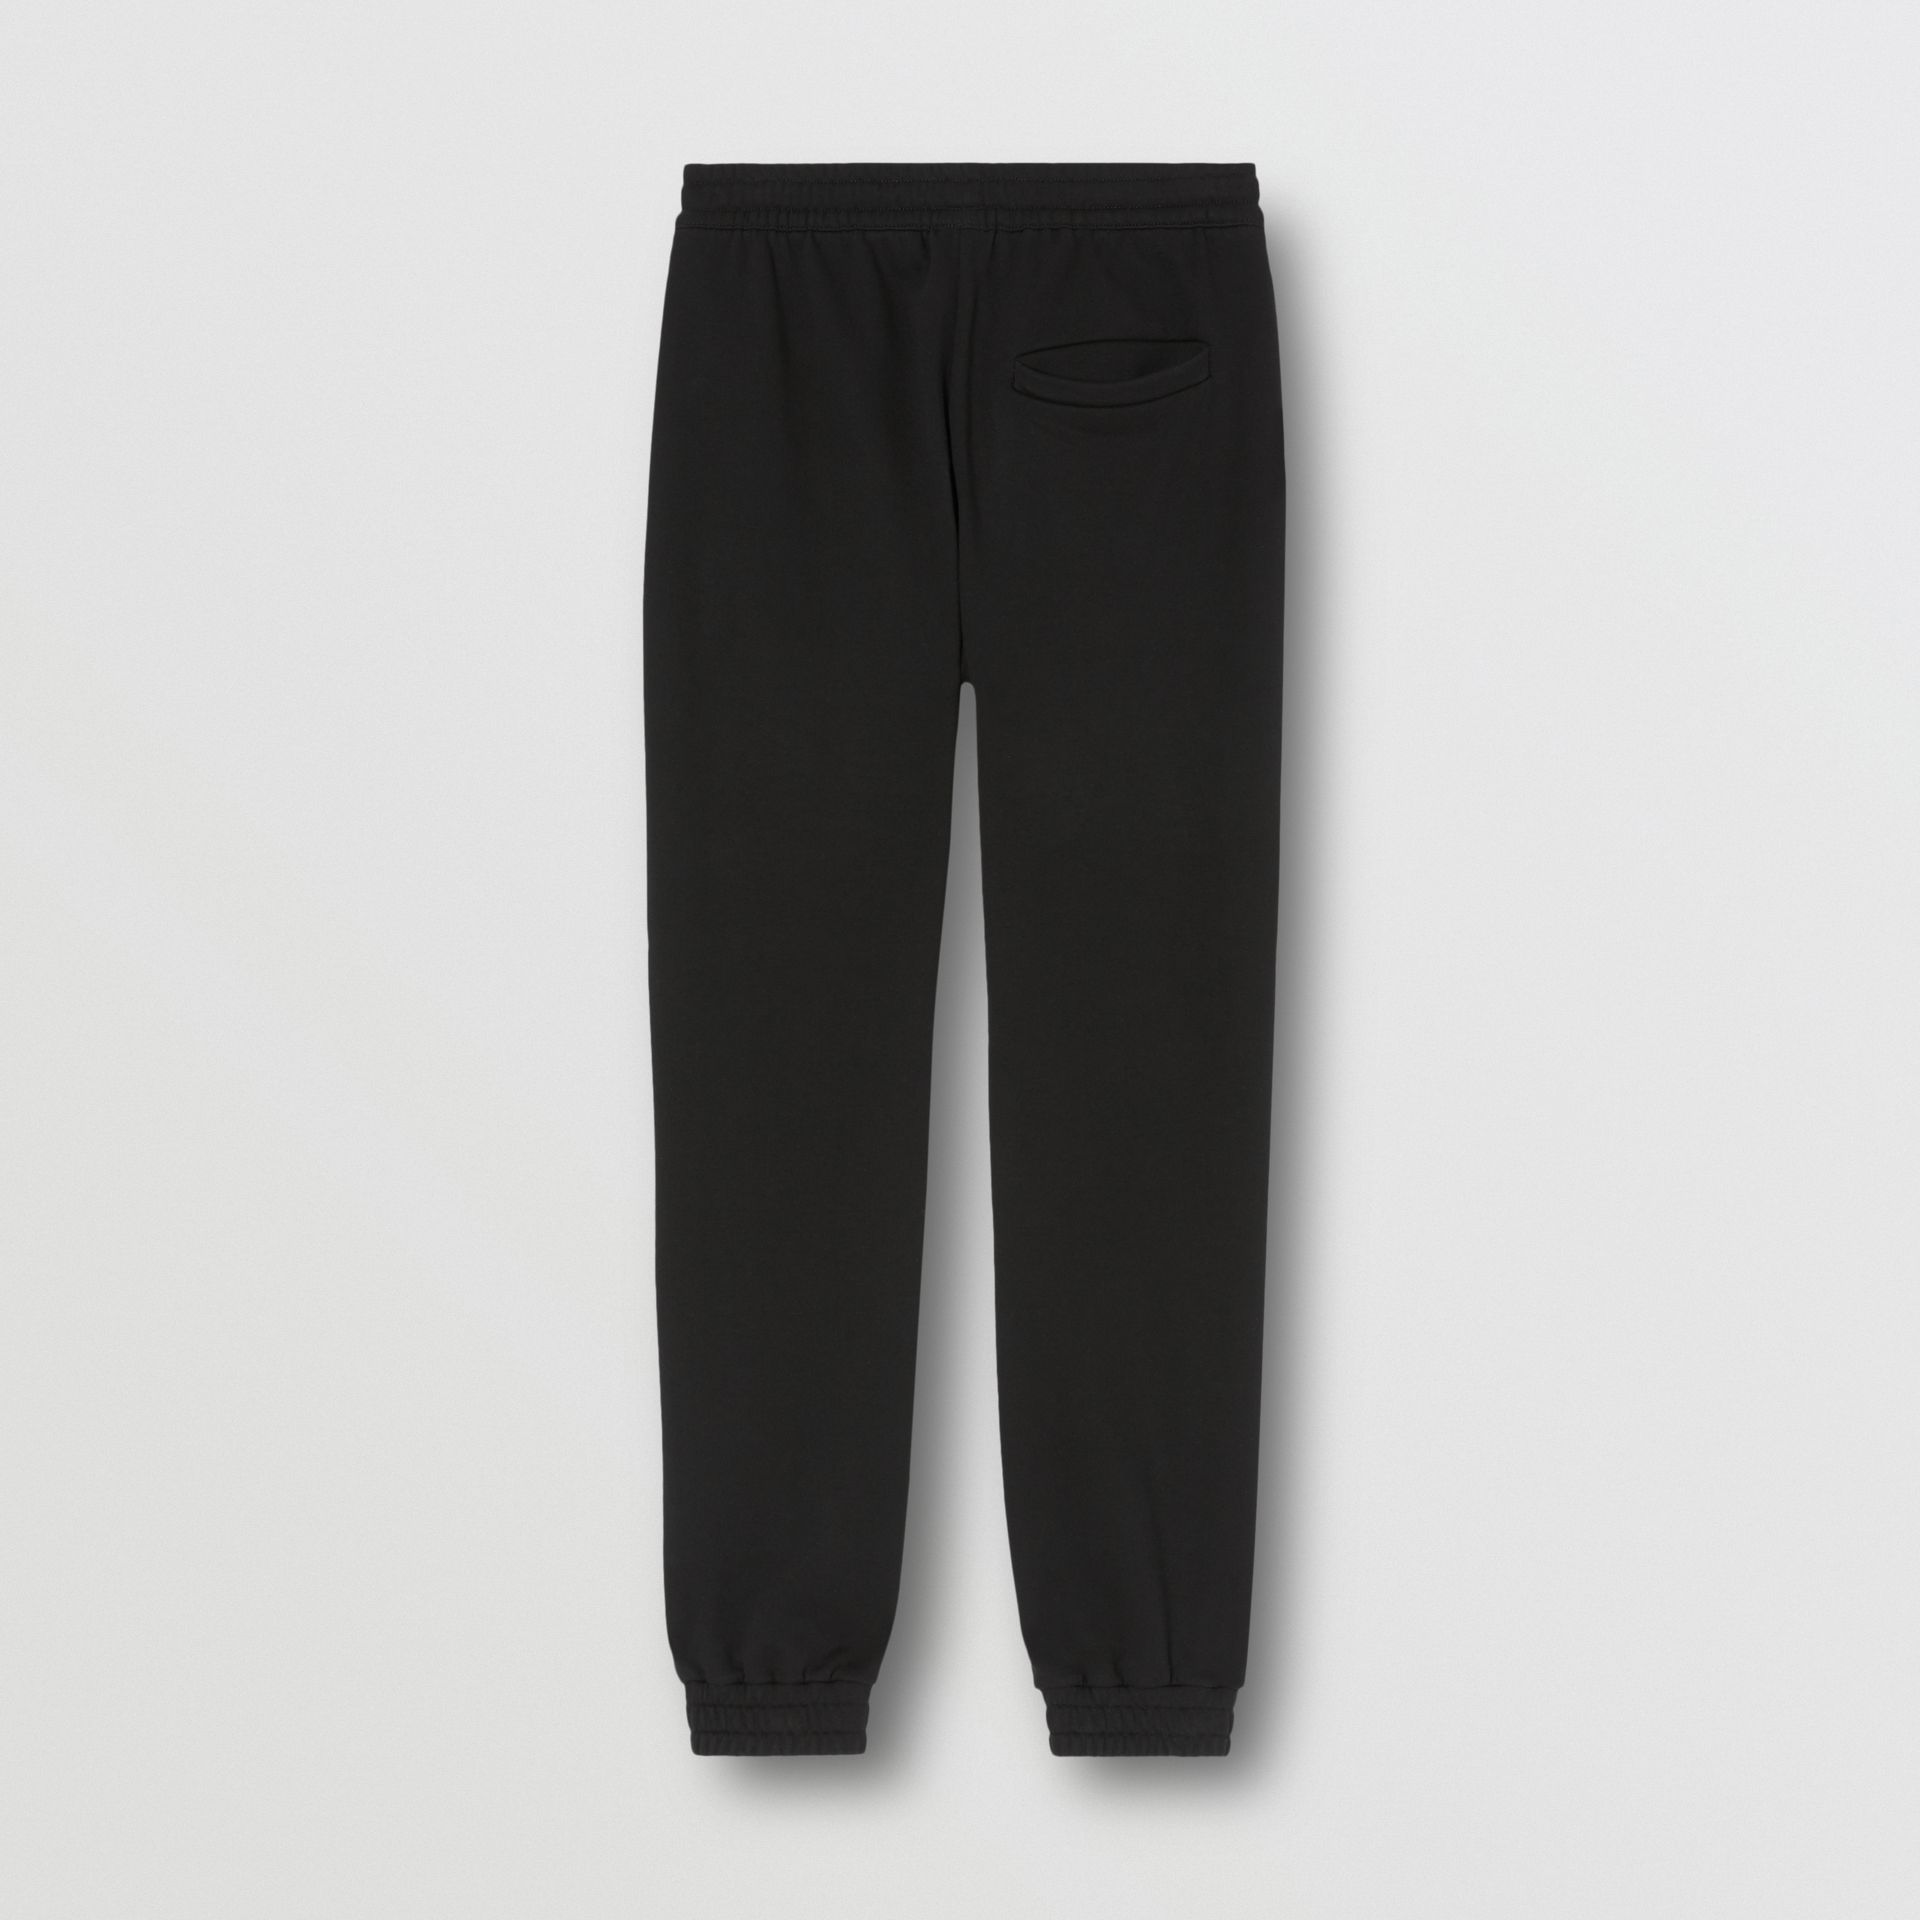 Monogram Motif Cotton Trackpants in Black - Men | Burberry Hong Kong S.A.R - gallery image 5